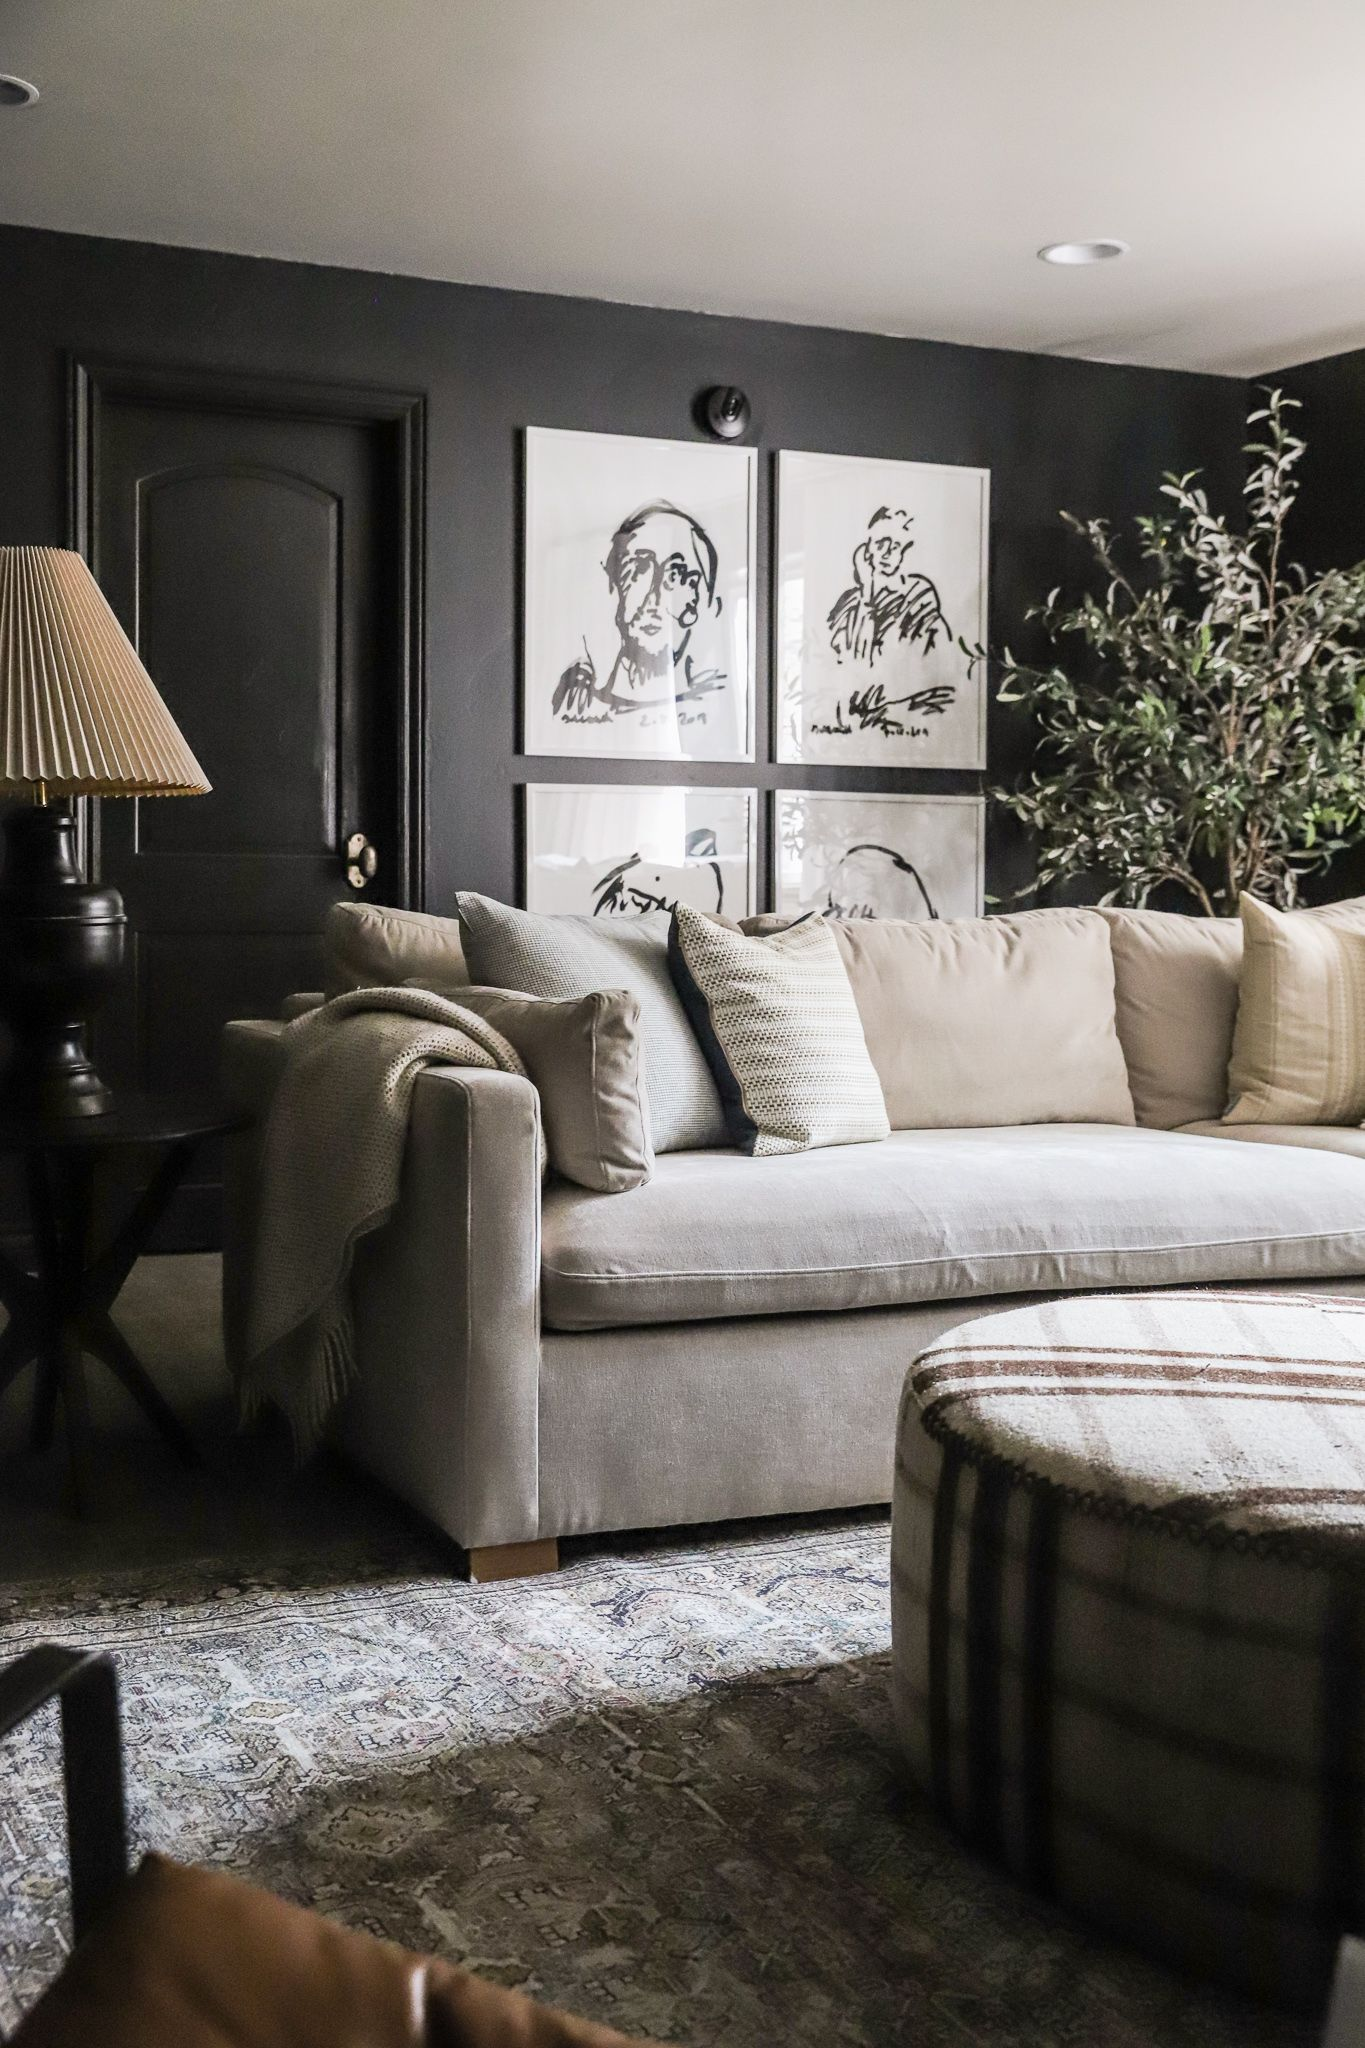 Our Dramatic Basement Family Room Makeover In 2020 Family Room Makeover Home Living Room Room Makeover